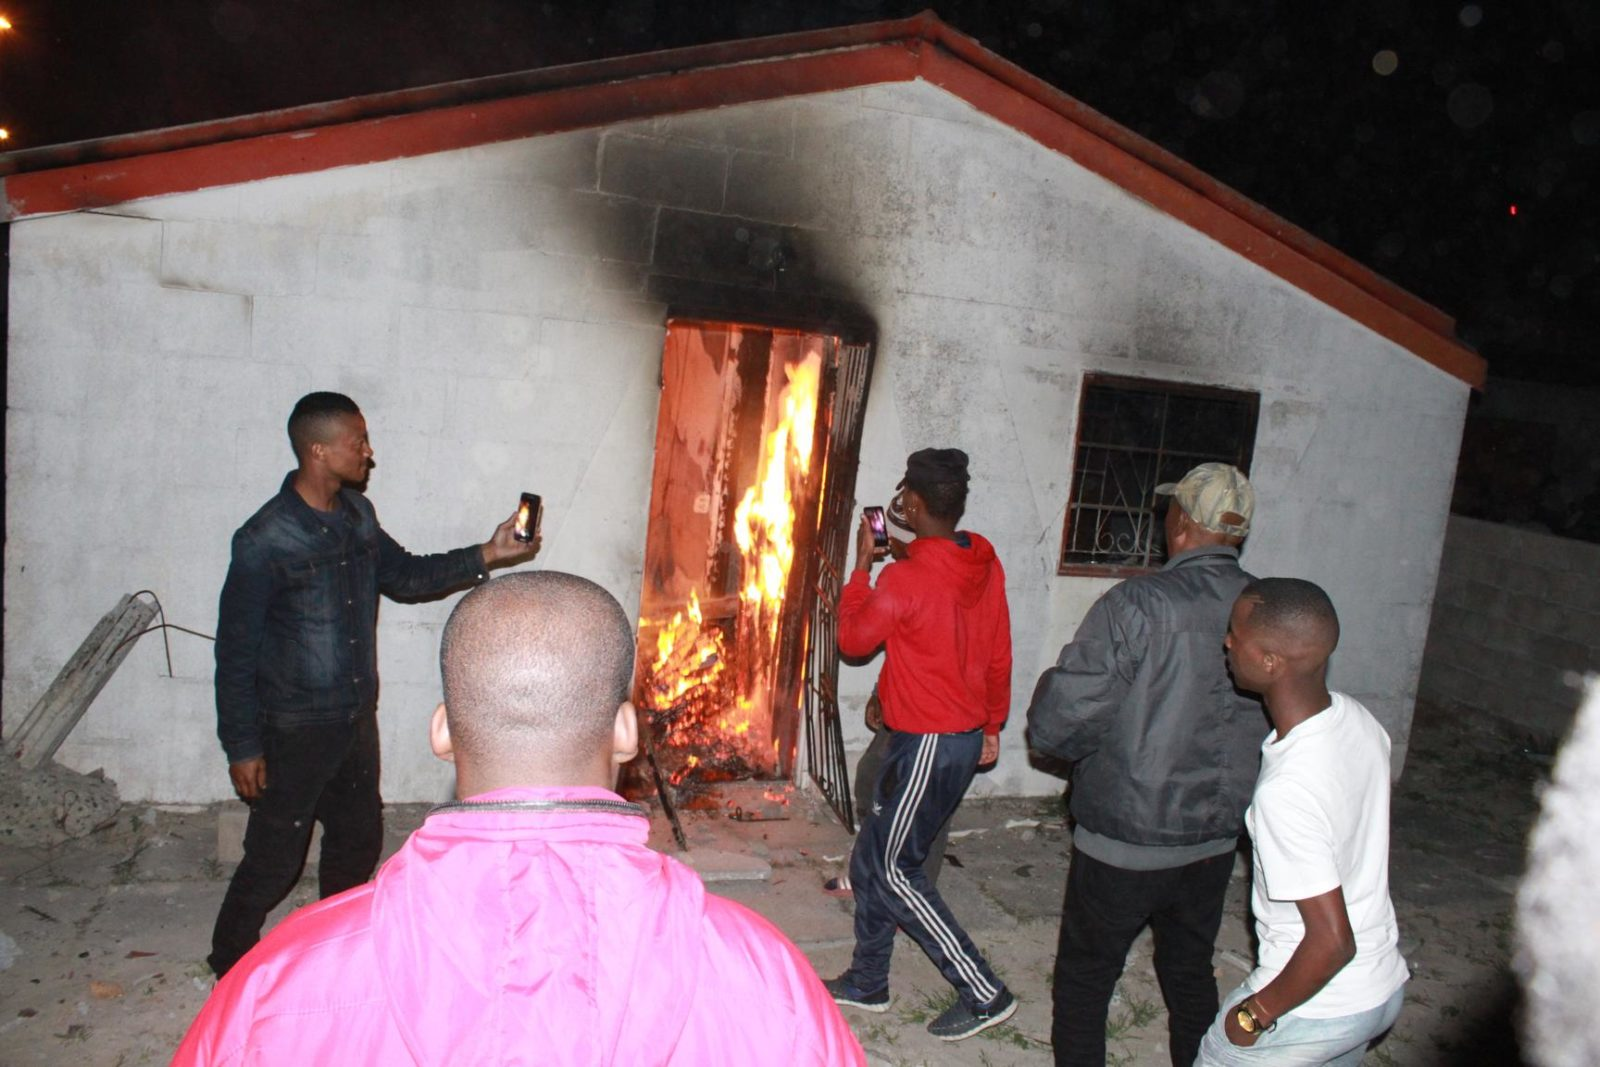 Khayelitsha residents torch house and dig 'grave' f